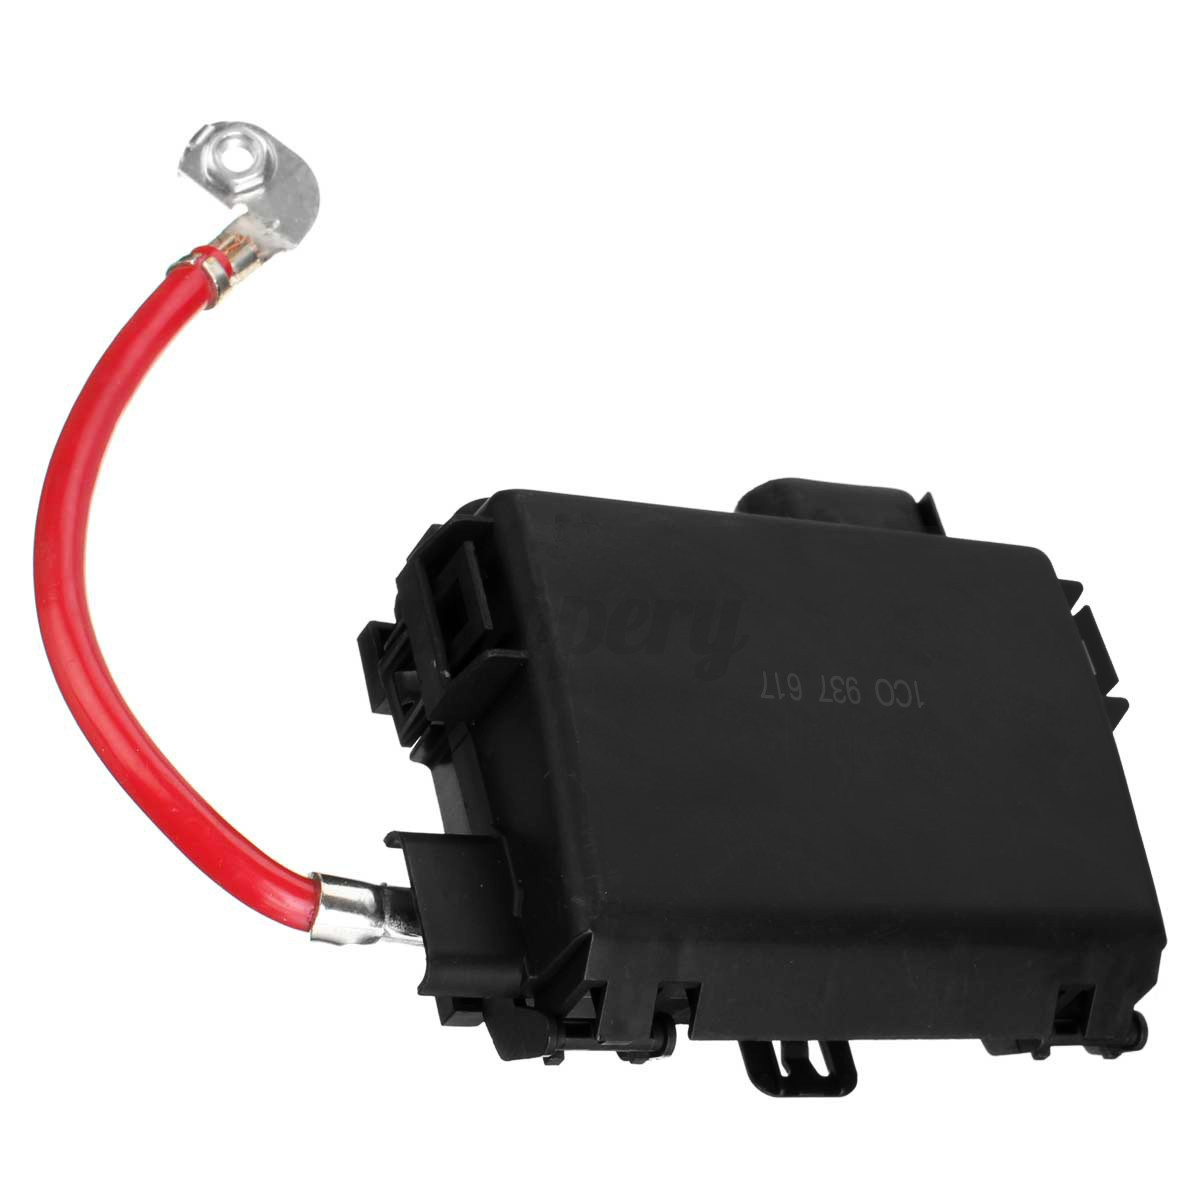 Skoda Octavia Diagnostic Socket Location Obd2 Connector